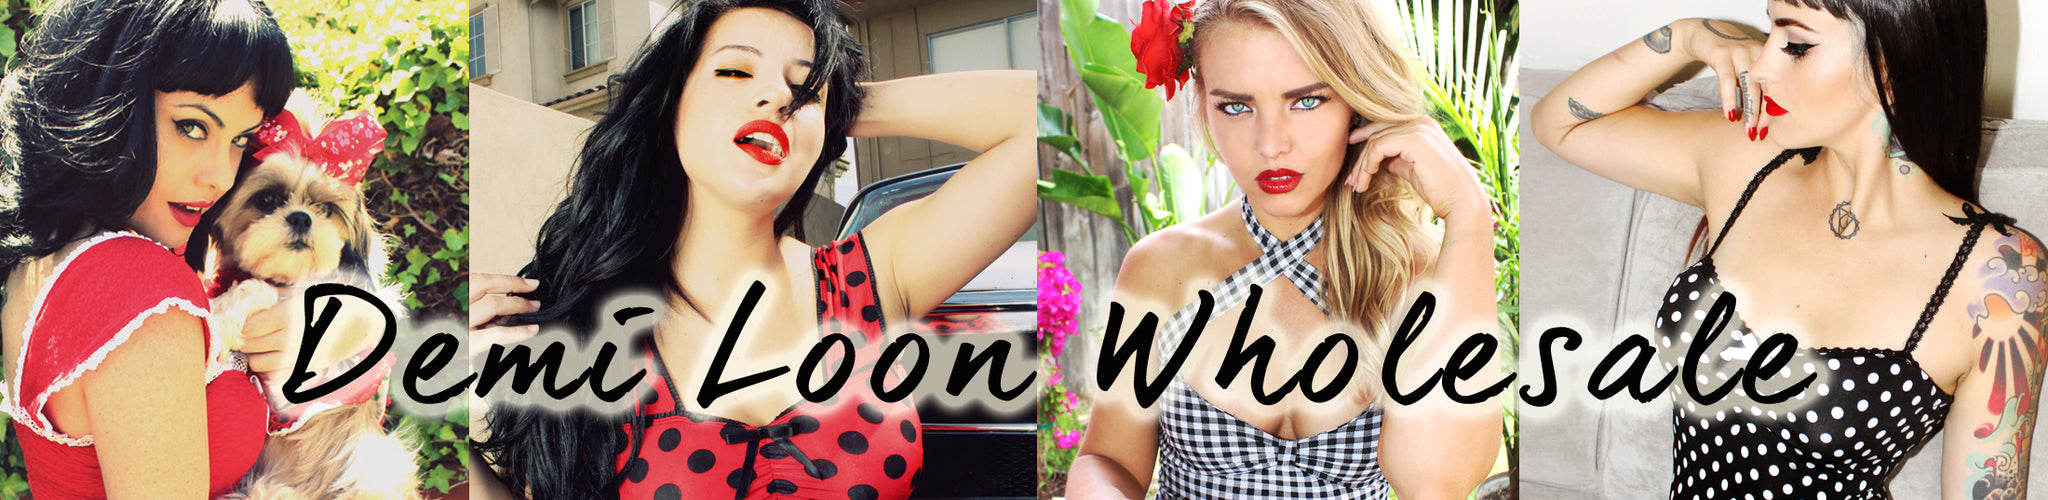 wholesale pinup clothing by demi loon